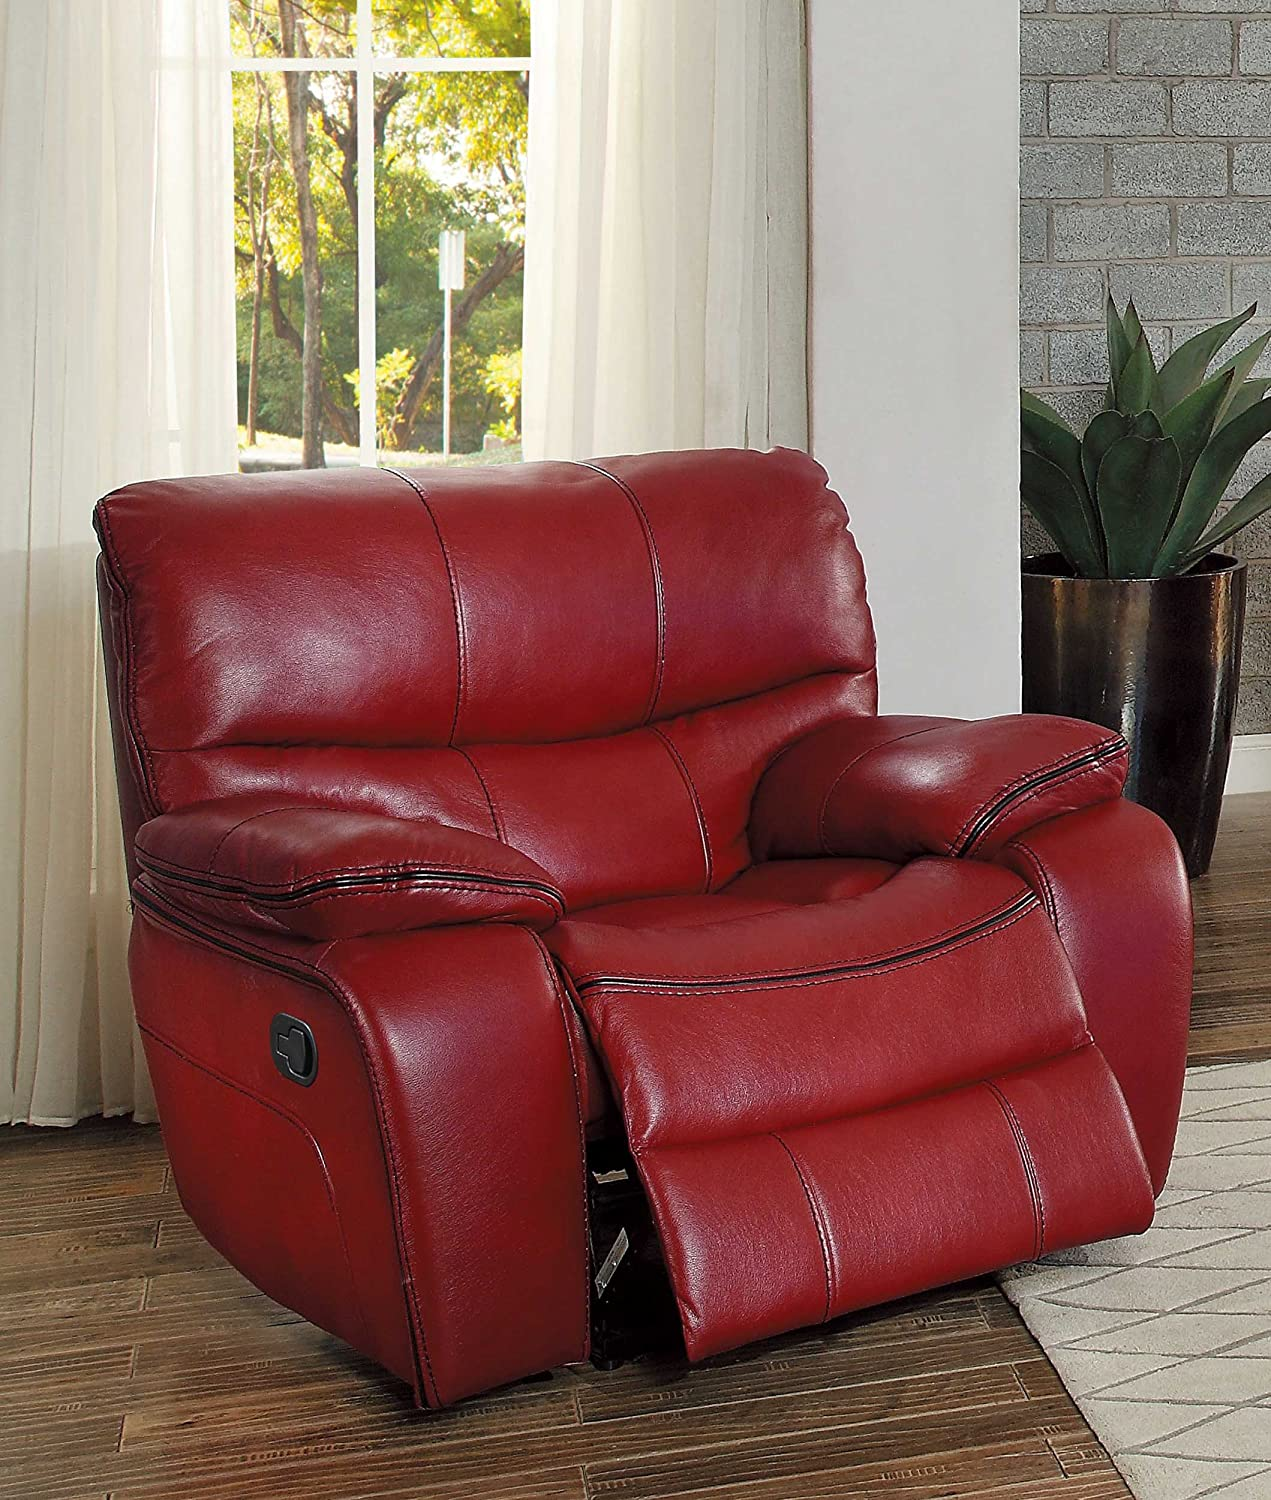 Homelegance Pecos Leather Gel Manual Glider Recliner, Red